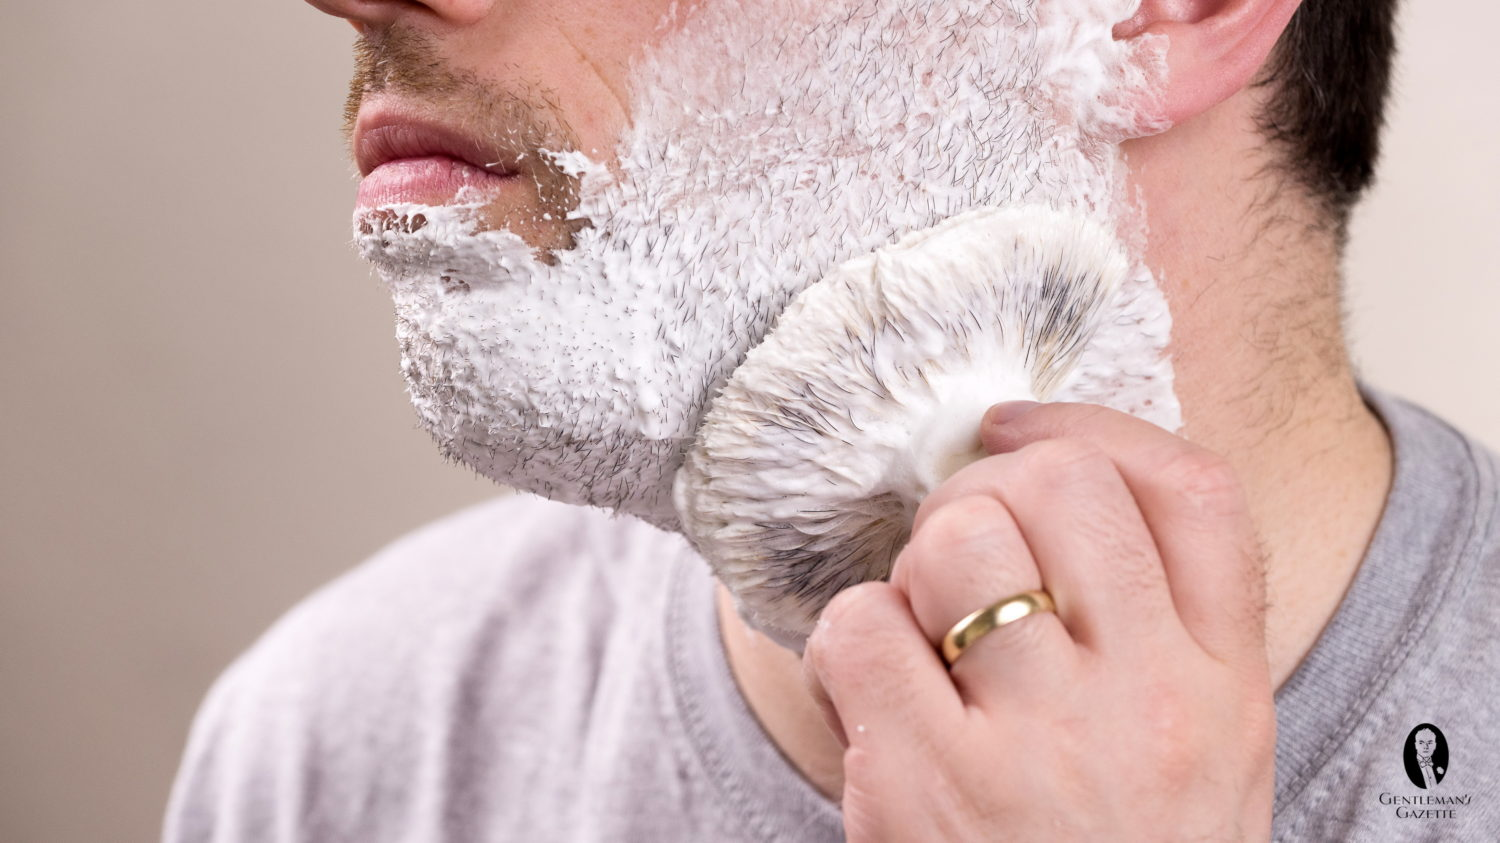 Applying lather to the face with a brush in a circular motion